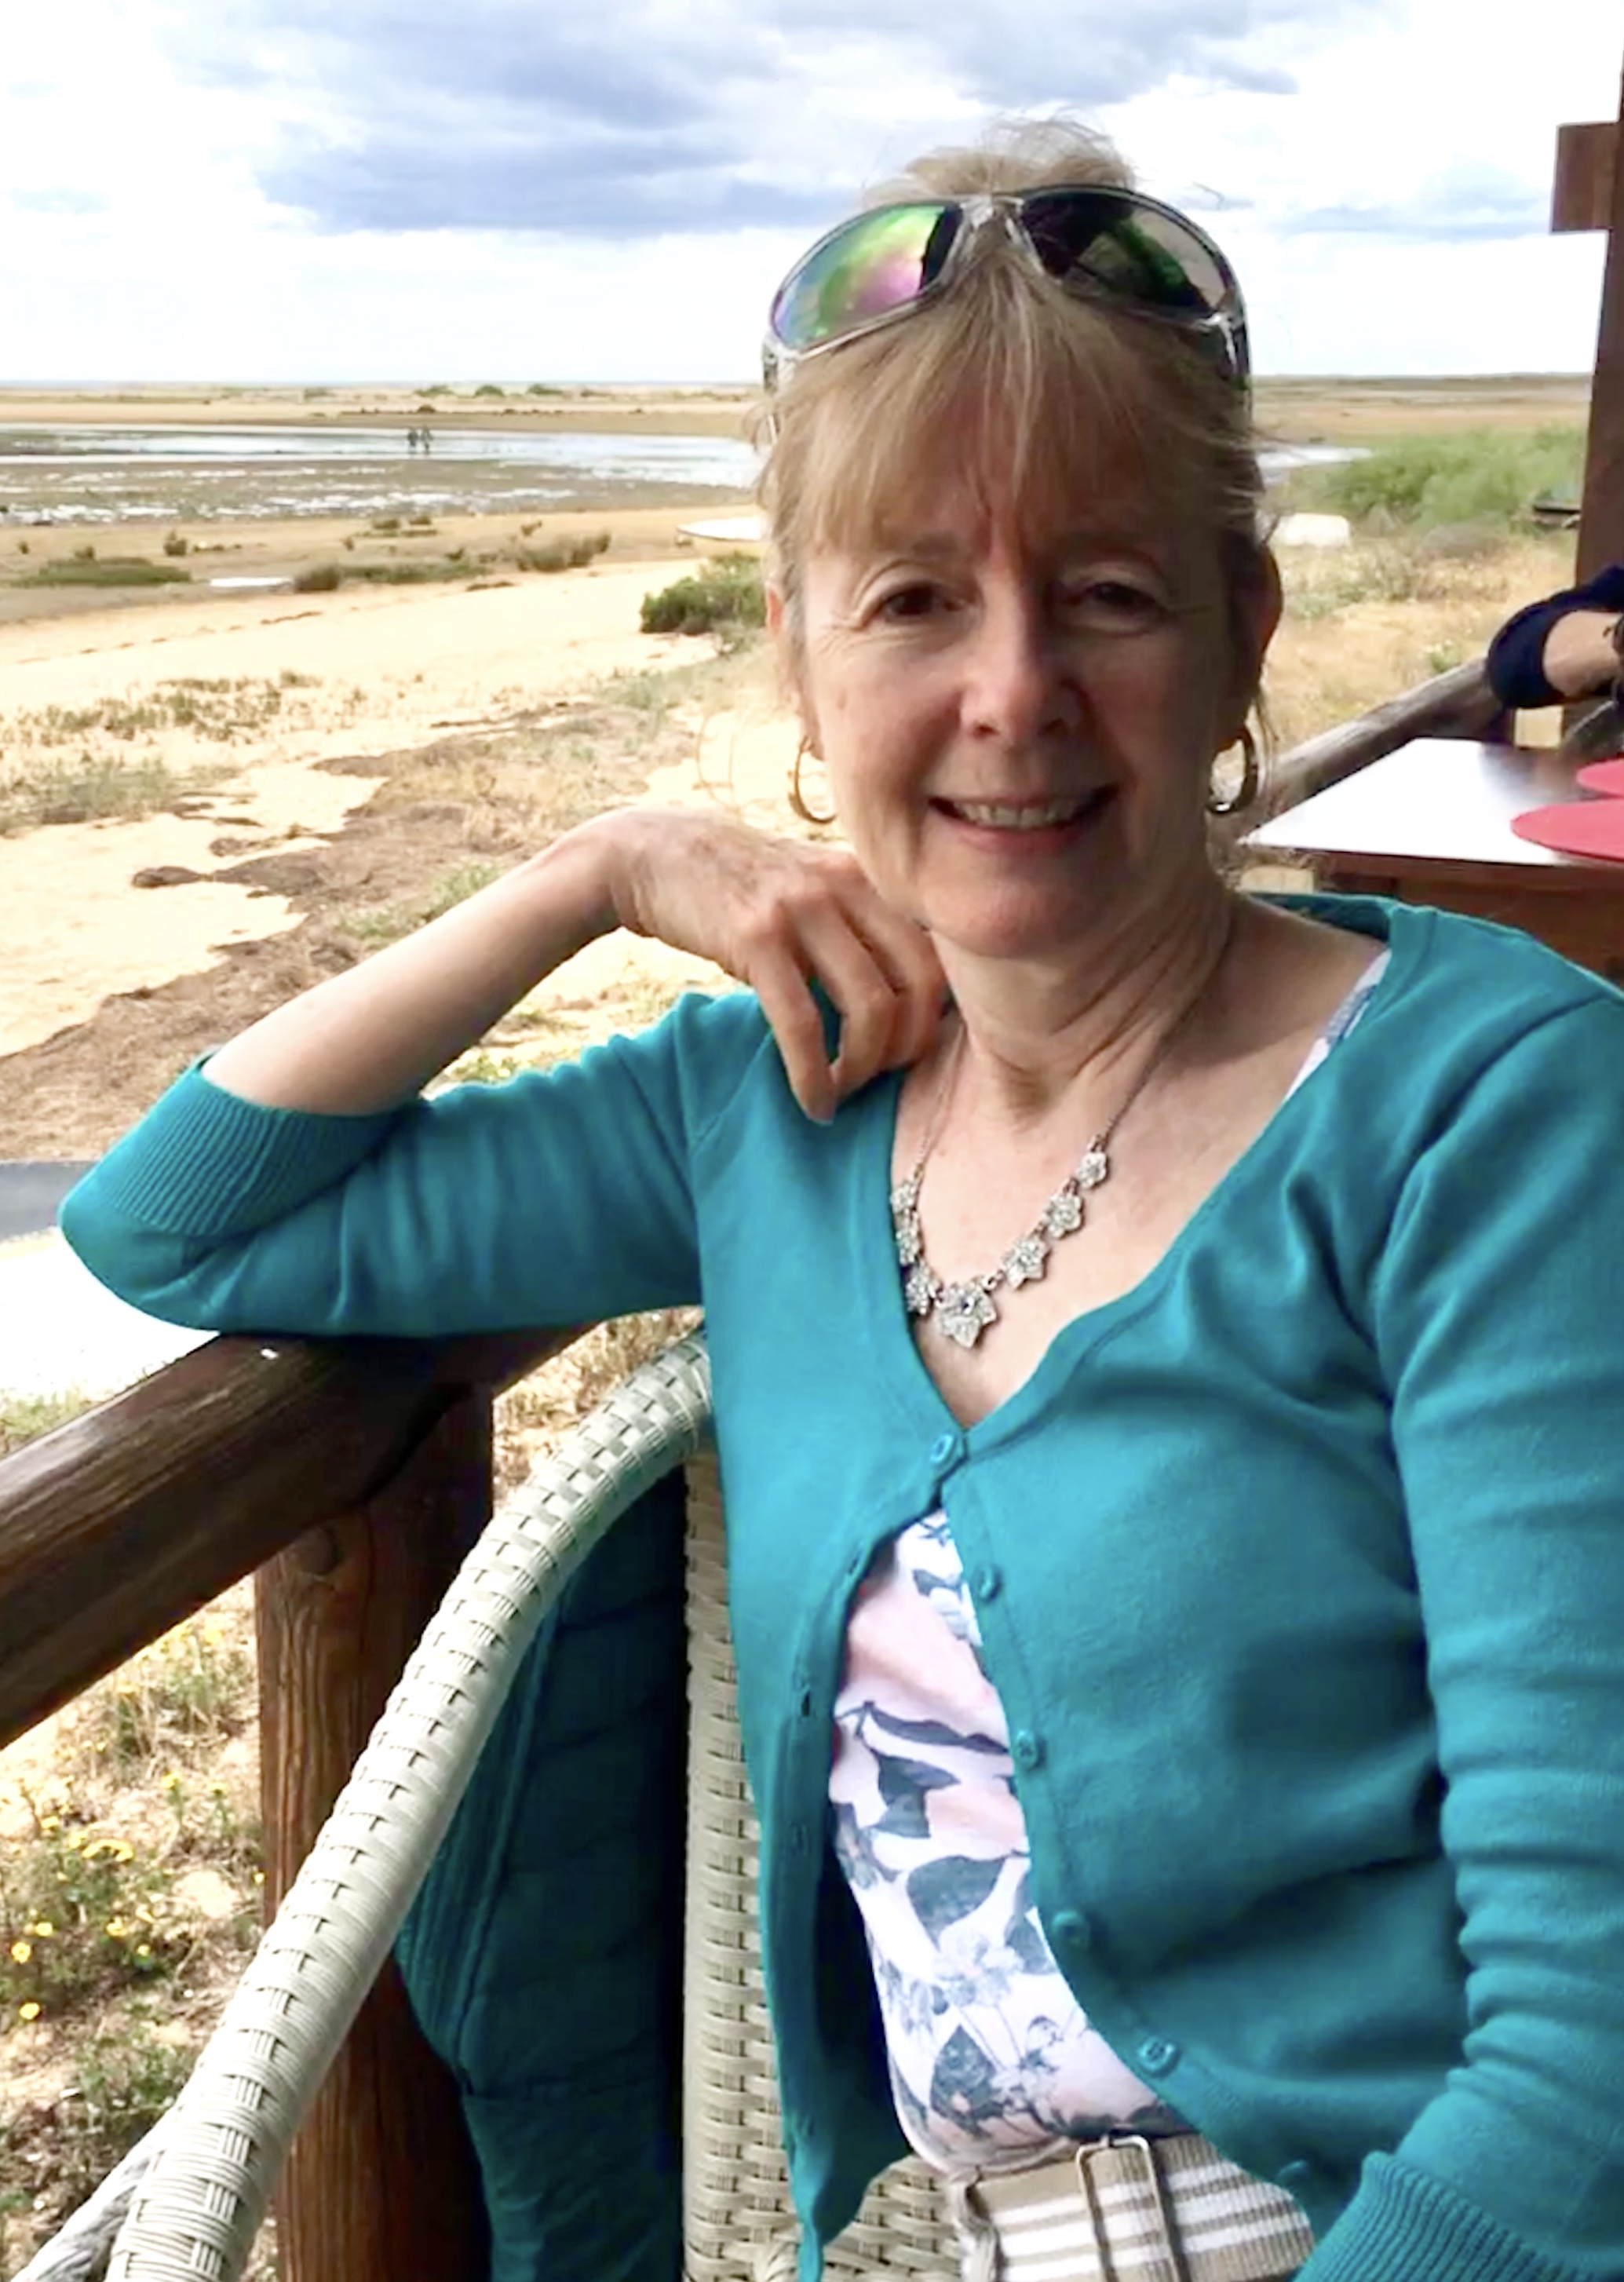 Natural Postural Yoga with Sheree McGregor - Sheree's yoga class will focus on developing natural postural alignment. Through the use of flowing movement, asanas (postures) and using the breath you will be able to improve the posture of your spine; re balance and strengthen your muscles, joints and ligaments; helping you develop your natural body alignment.Tuesday evenings - 7.30pm - 8.30pm